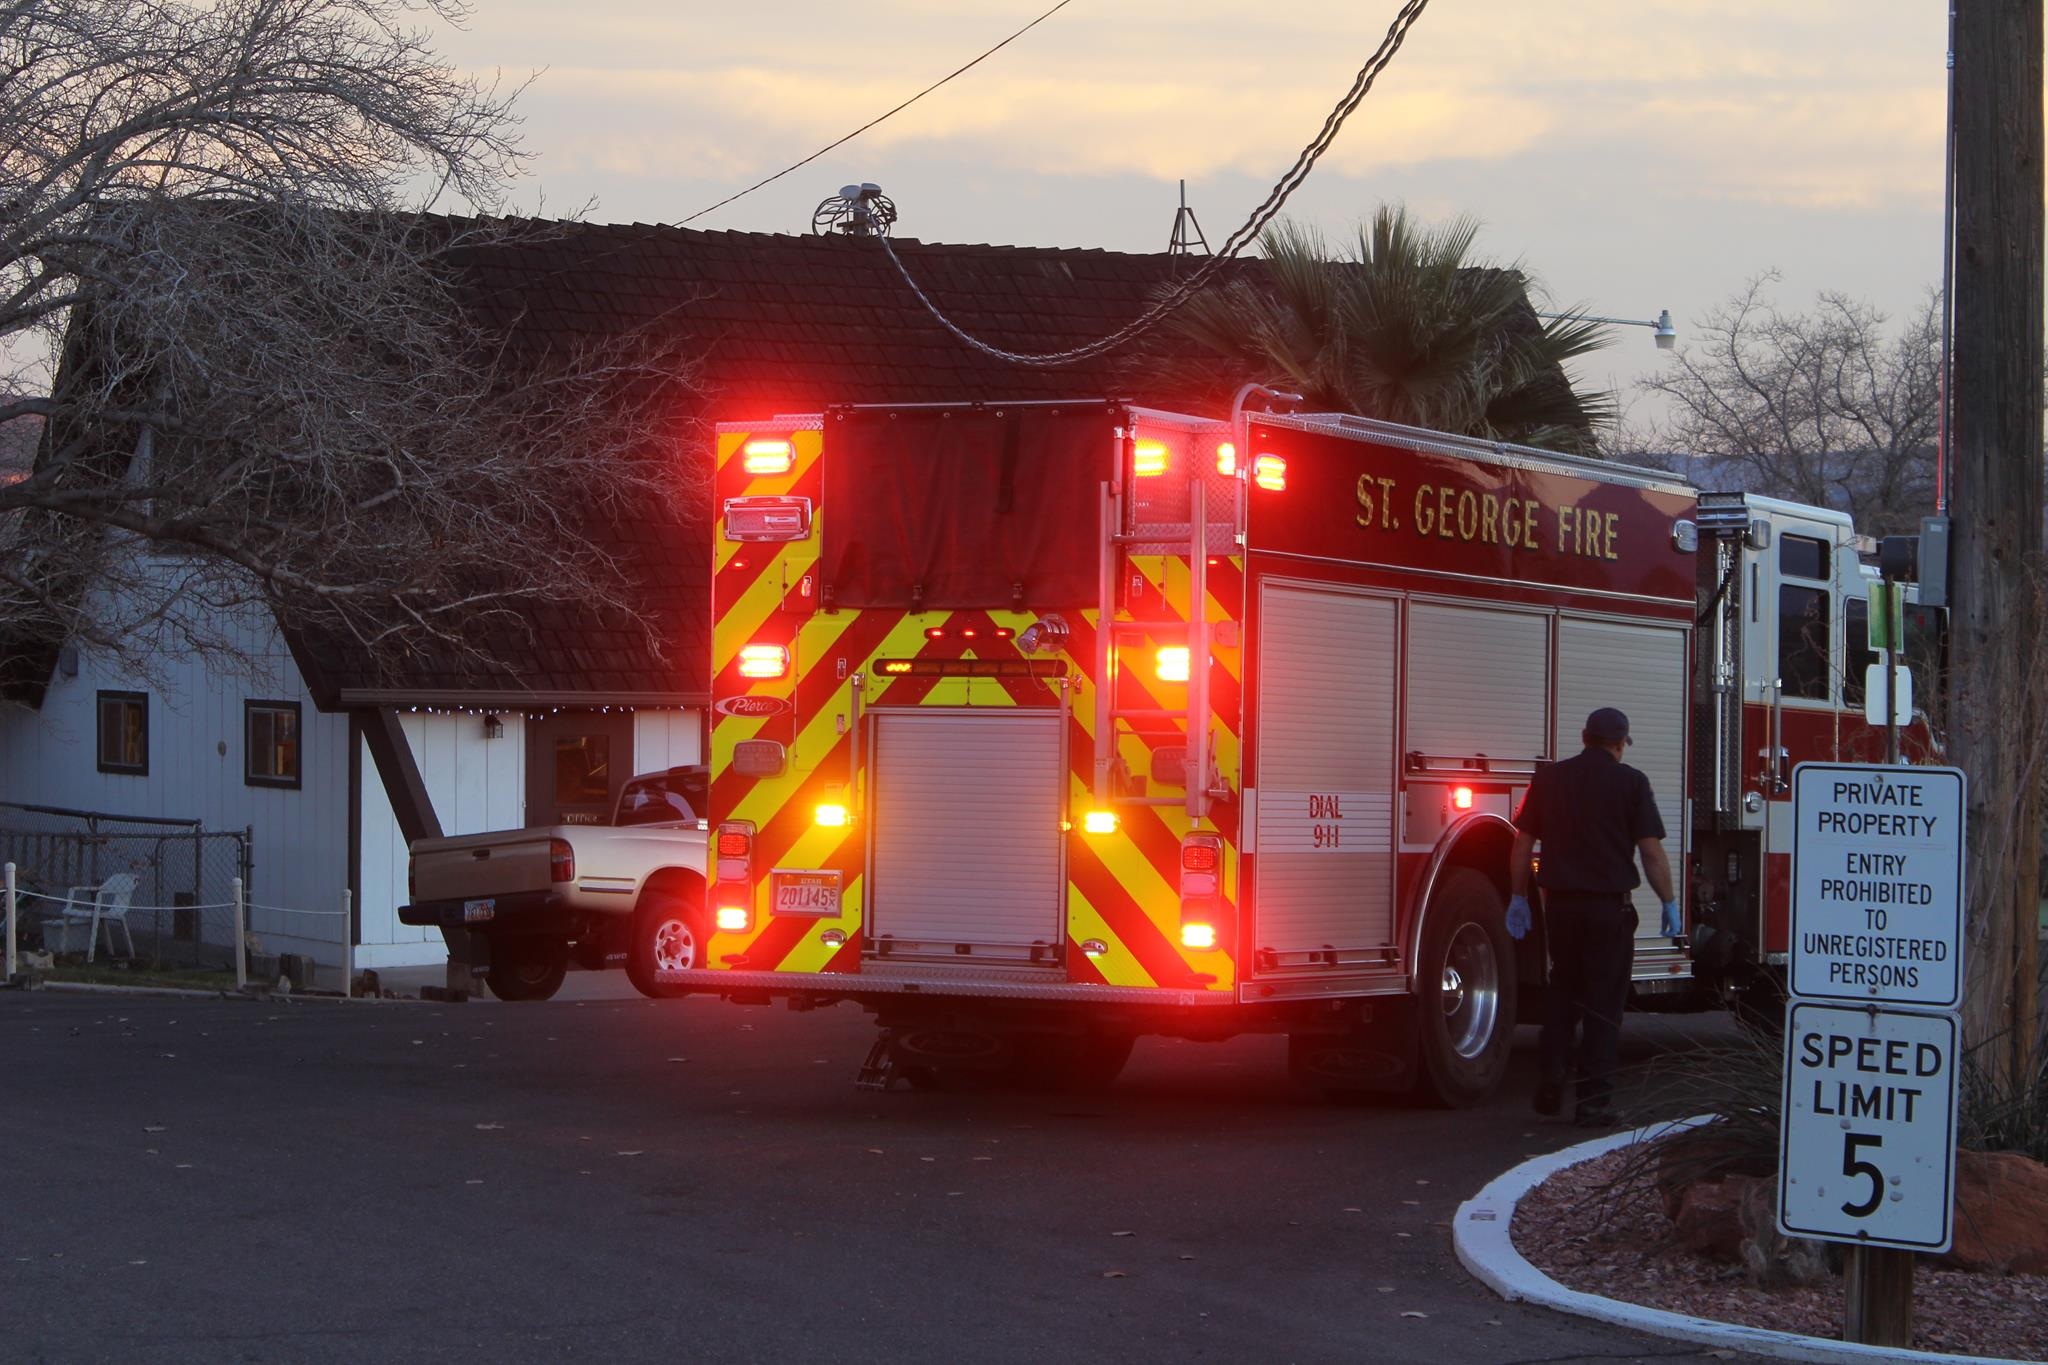 St. George Fire Department responded to an injured pedestrian in the St. George RV Park Campground St. George, Utah, Dec. 13, 2015   Photo by Don Gilman, St. George News